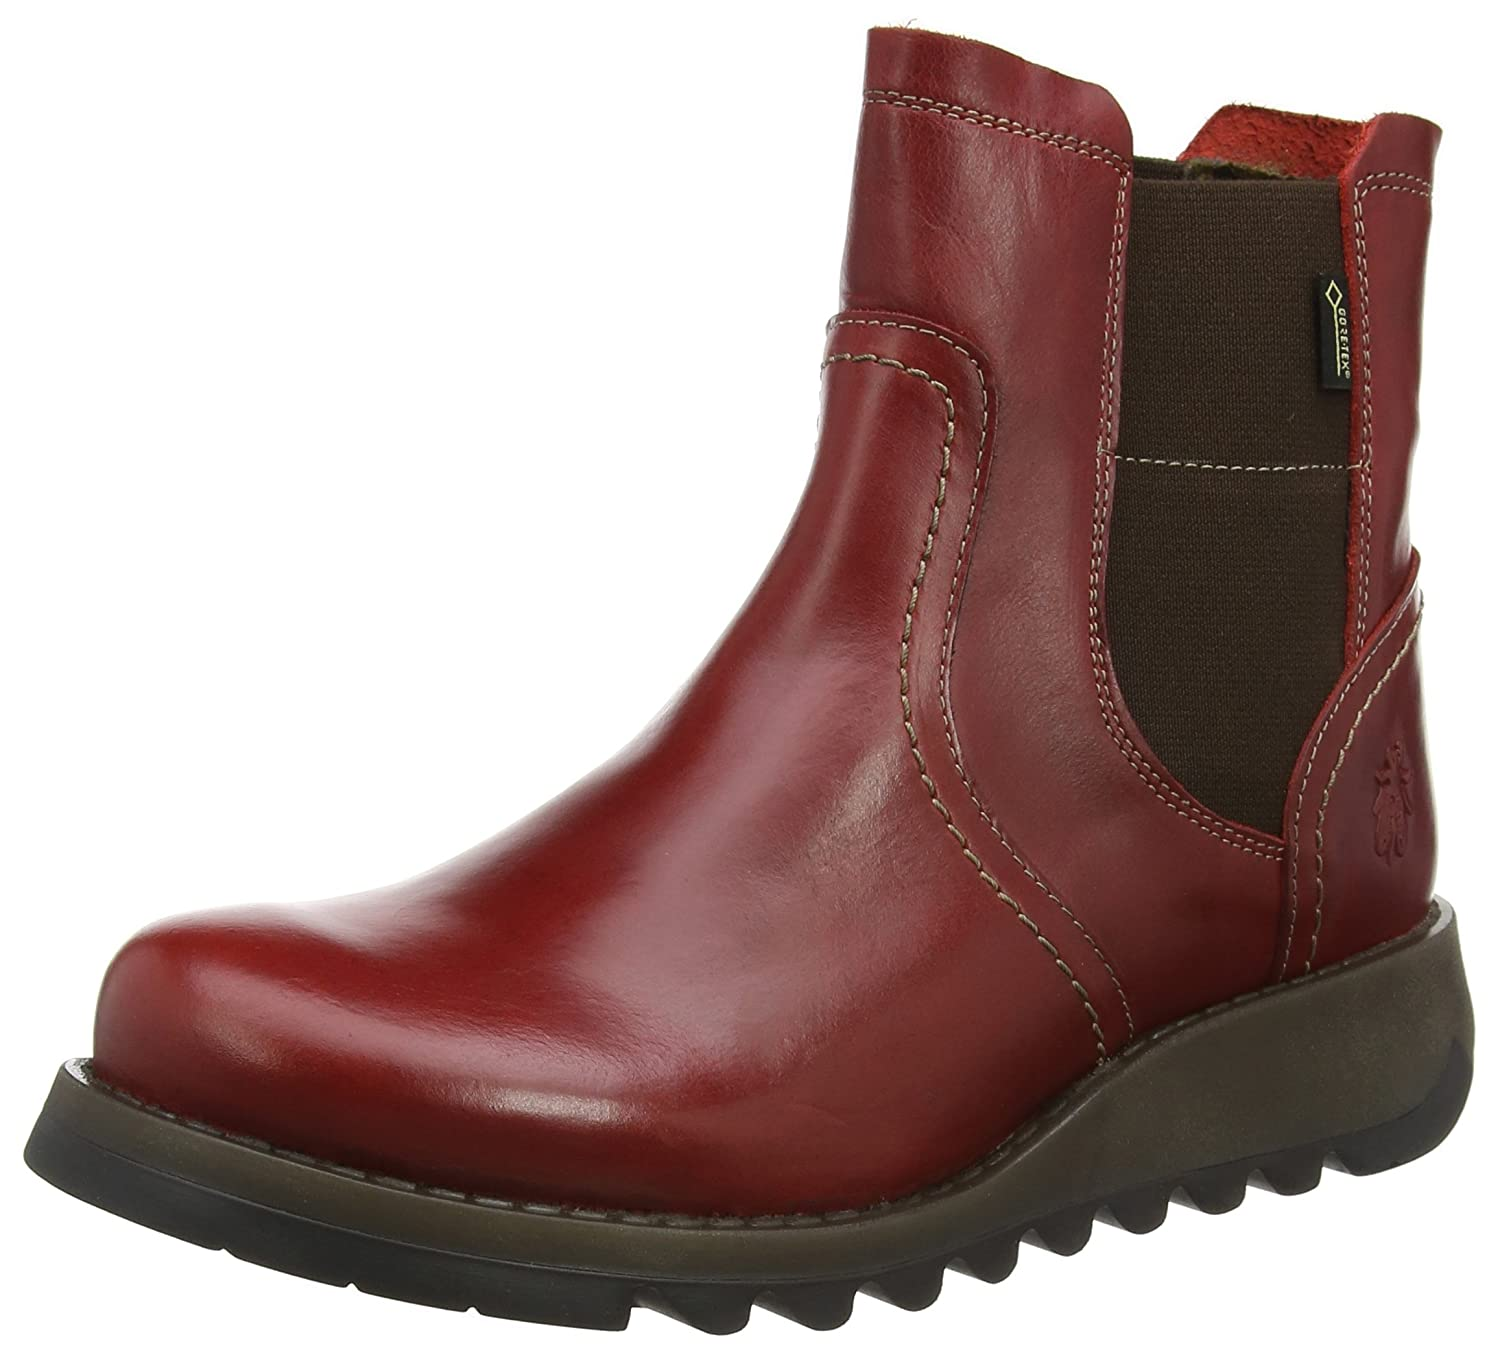 FLY London Women's Scon058fly Chelsea Boot B06X9NMVGM 36 M EU (5.5-6 US)|Red Rug